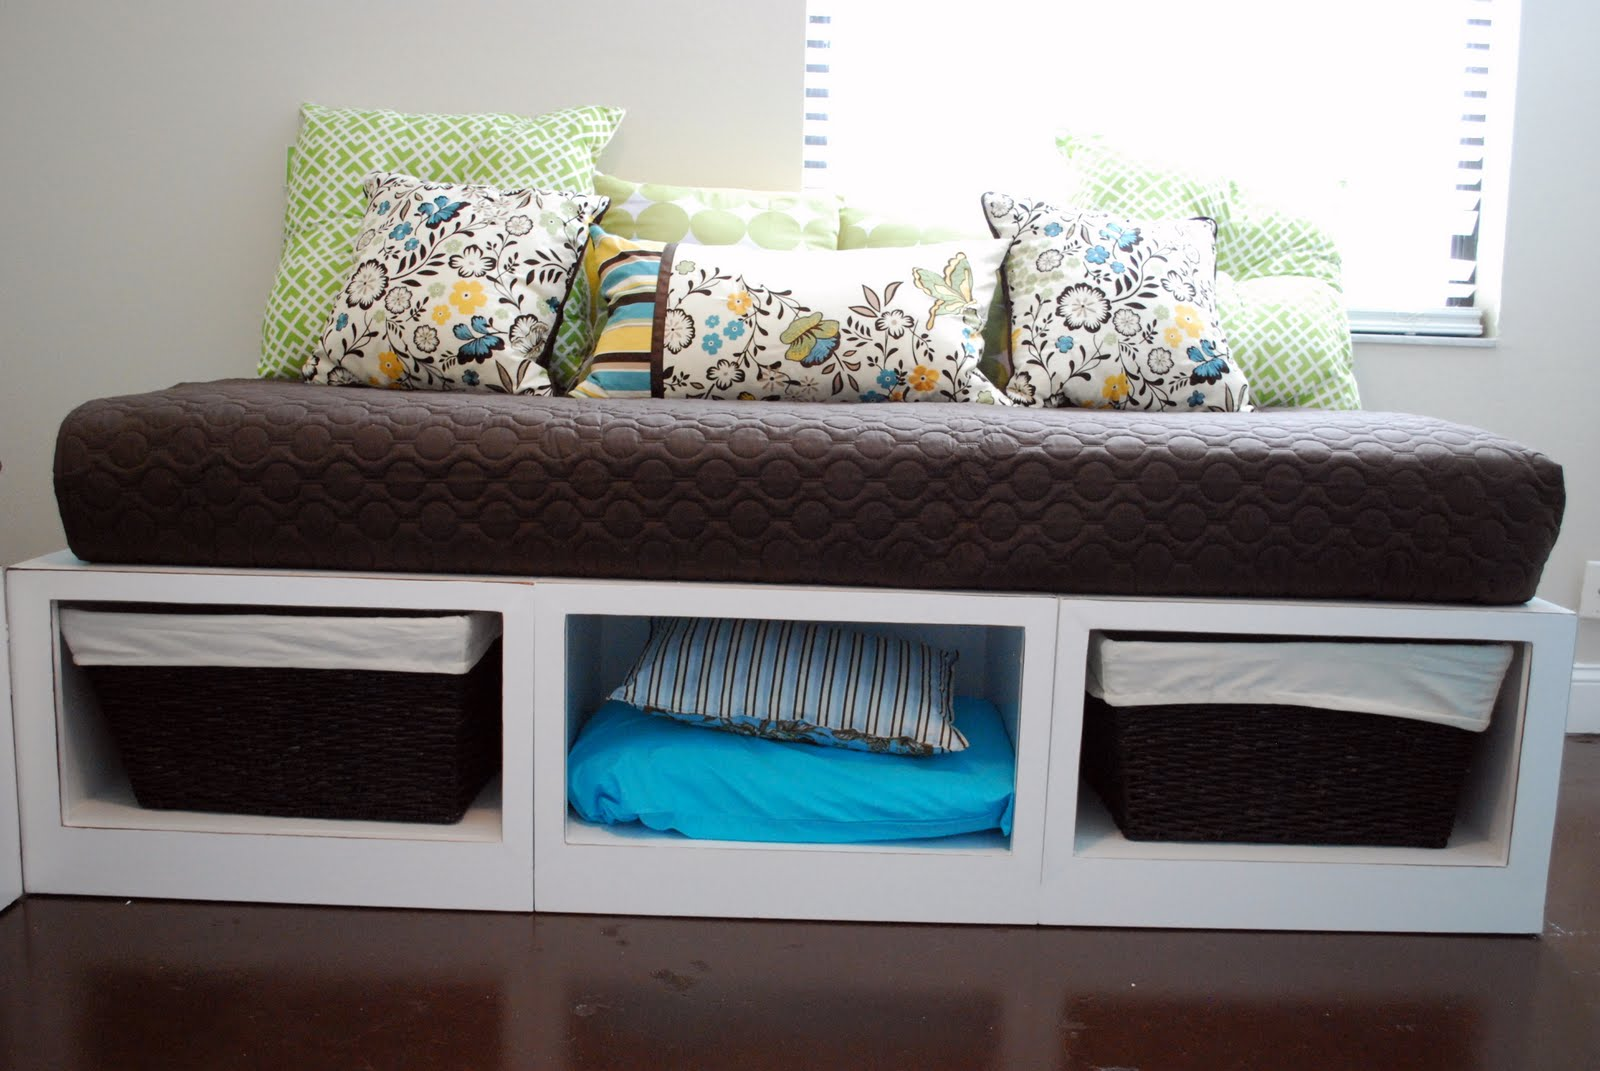 Ana white stratton daybeds times two diy projects Daybeds with storage